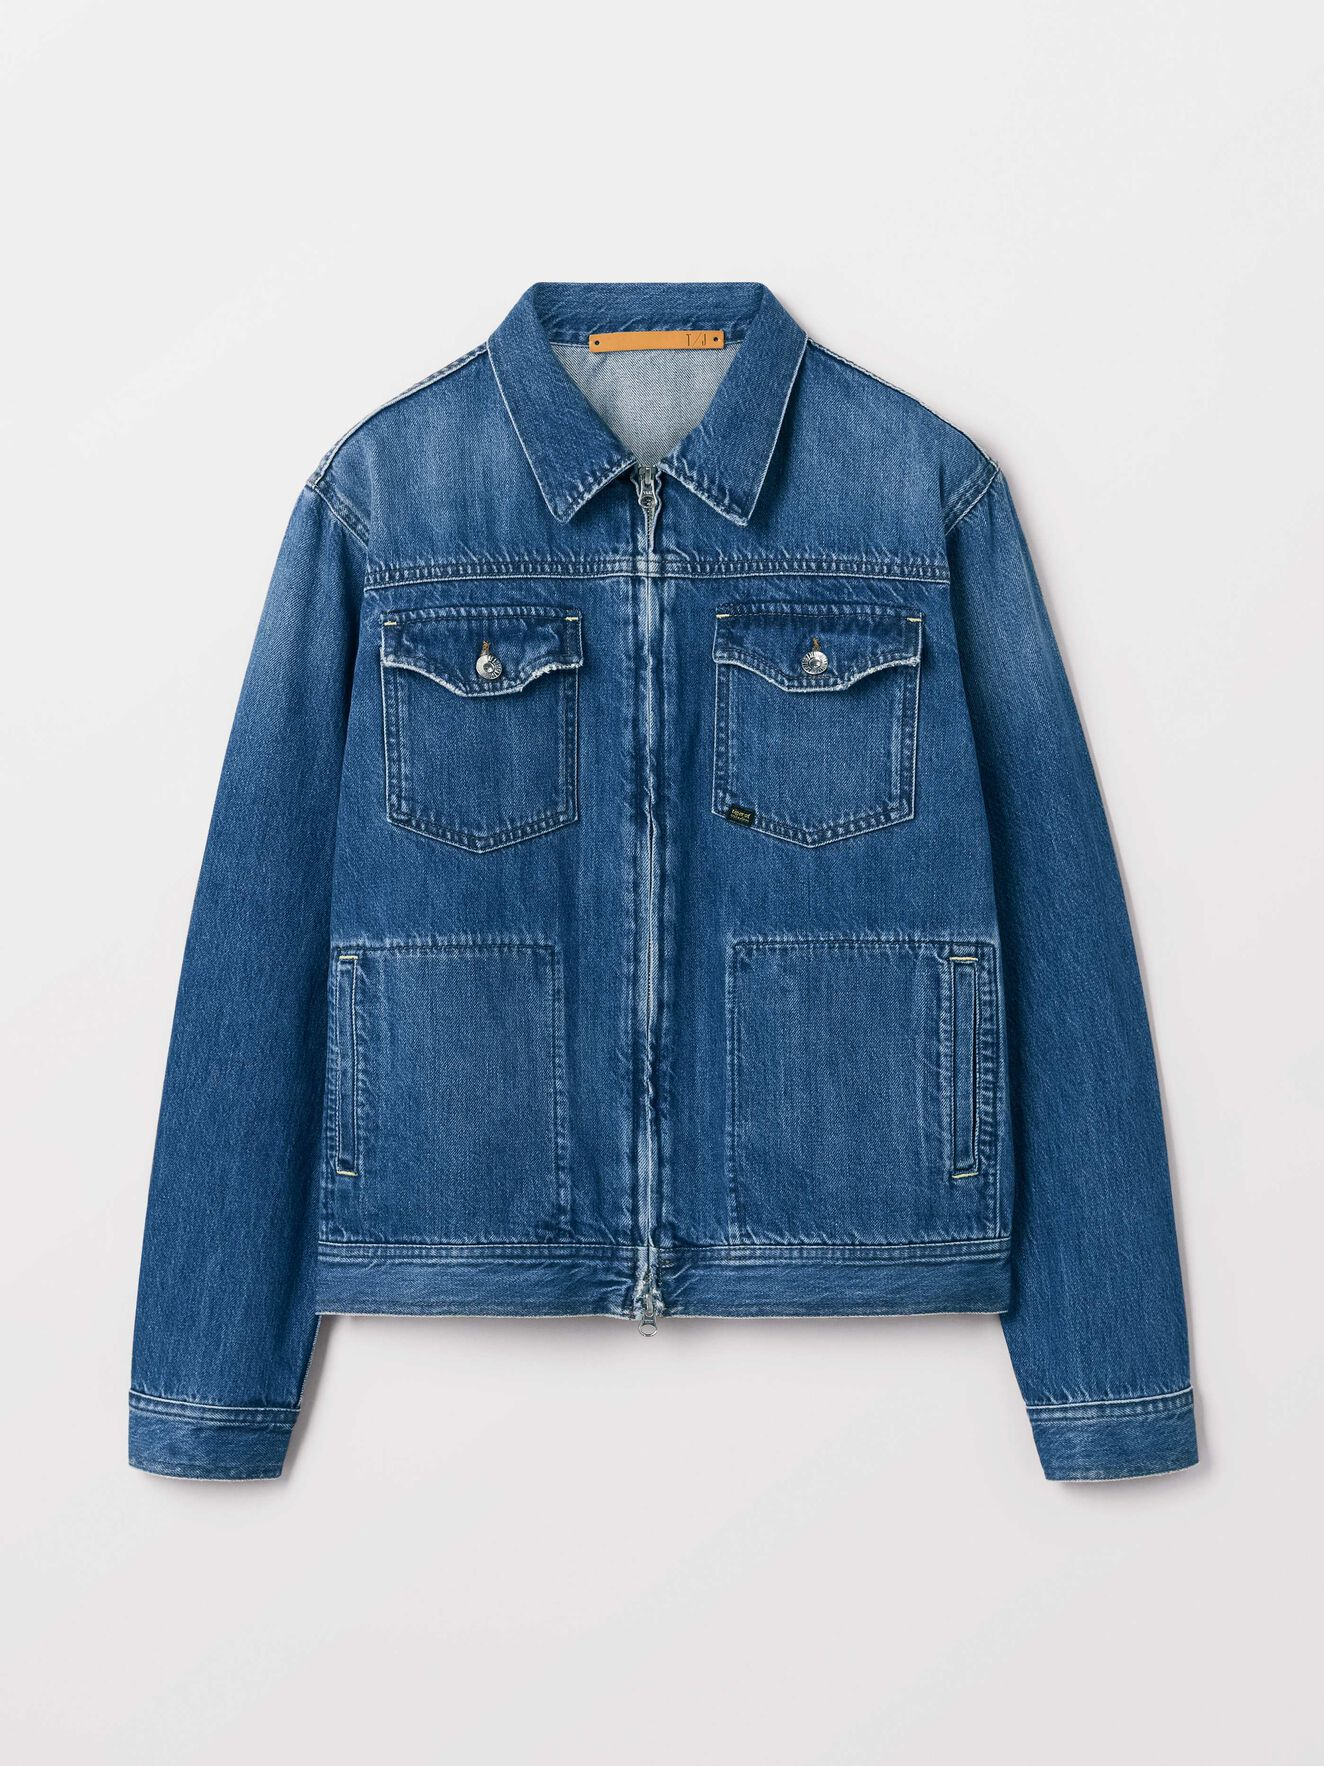 Crust Jacket in Dust blue from Tiger of Sweden